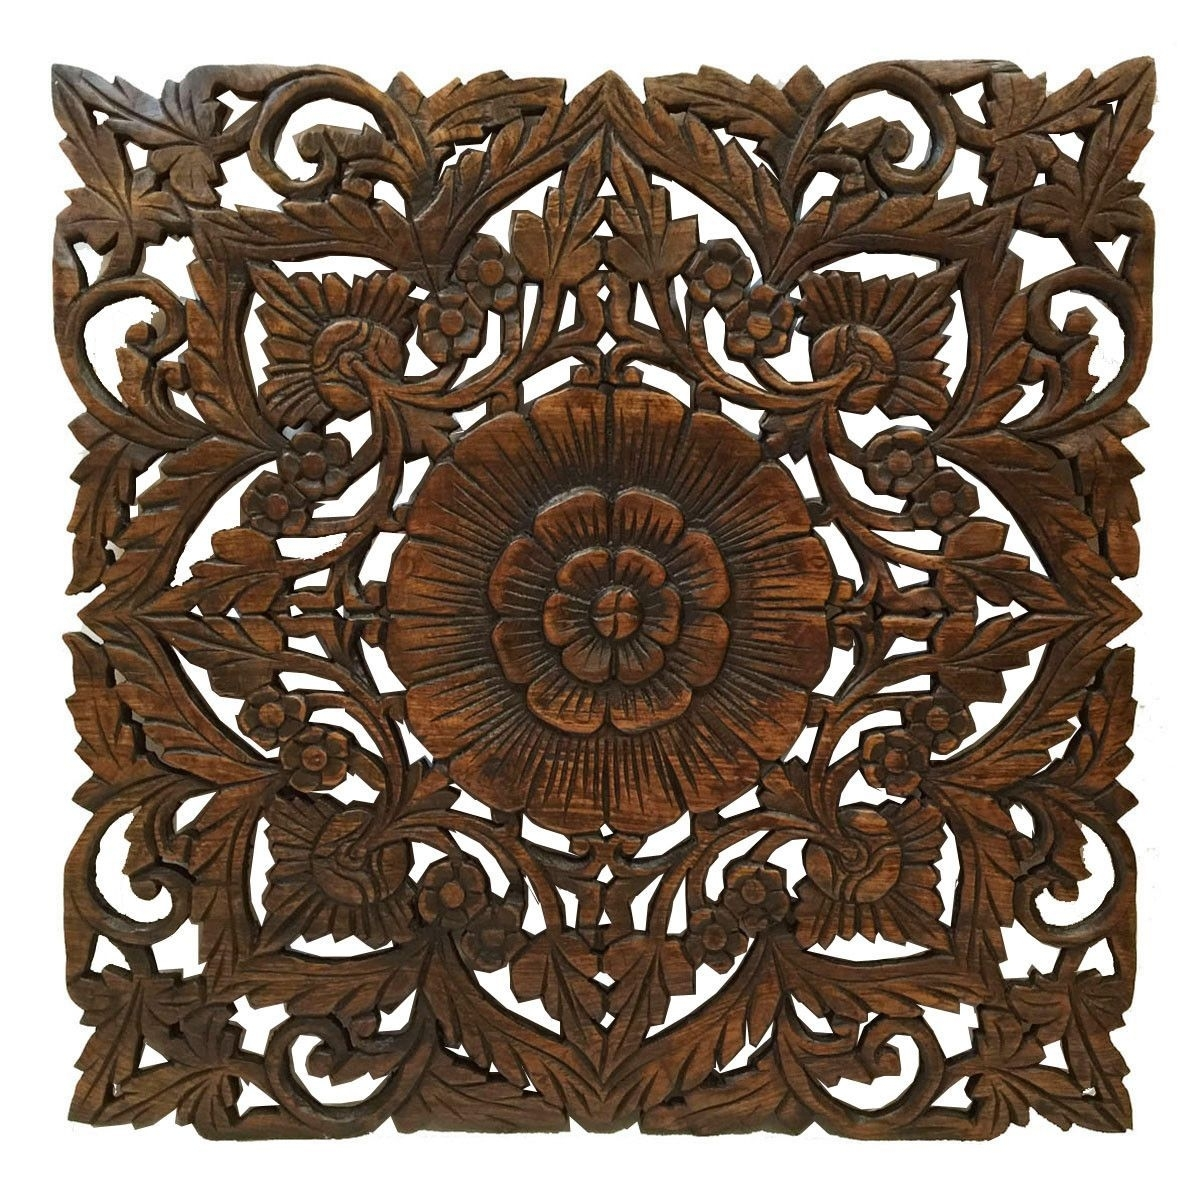 Oriental Carved Floral Wall Decor. Unique Asian Wood Wall Art. Large Within Newest Oriental Wall Art (Gallery 3 of 20)